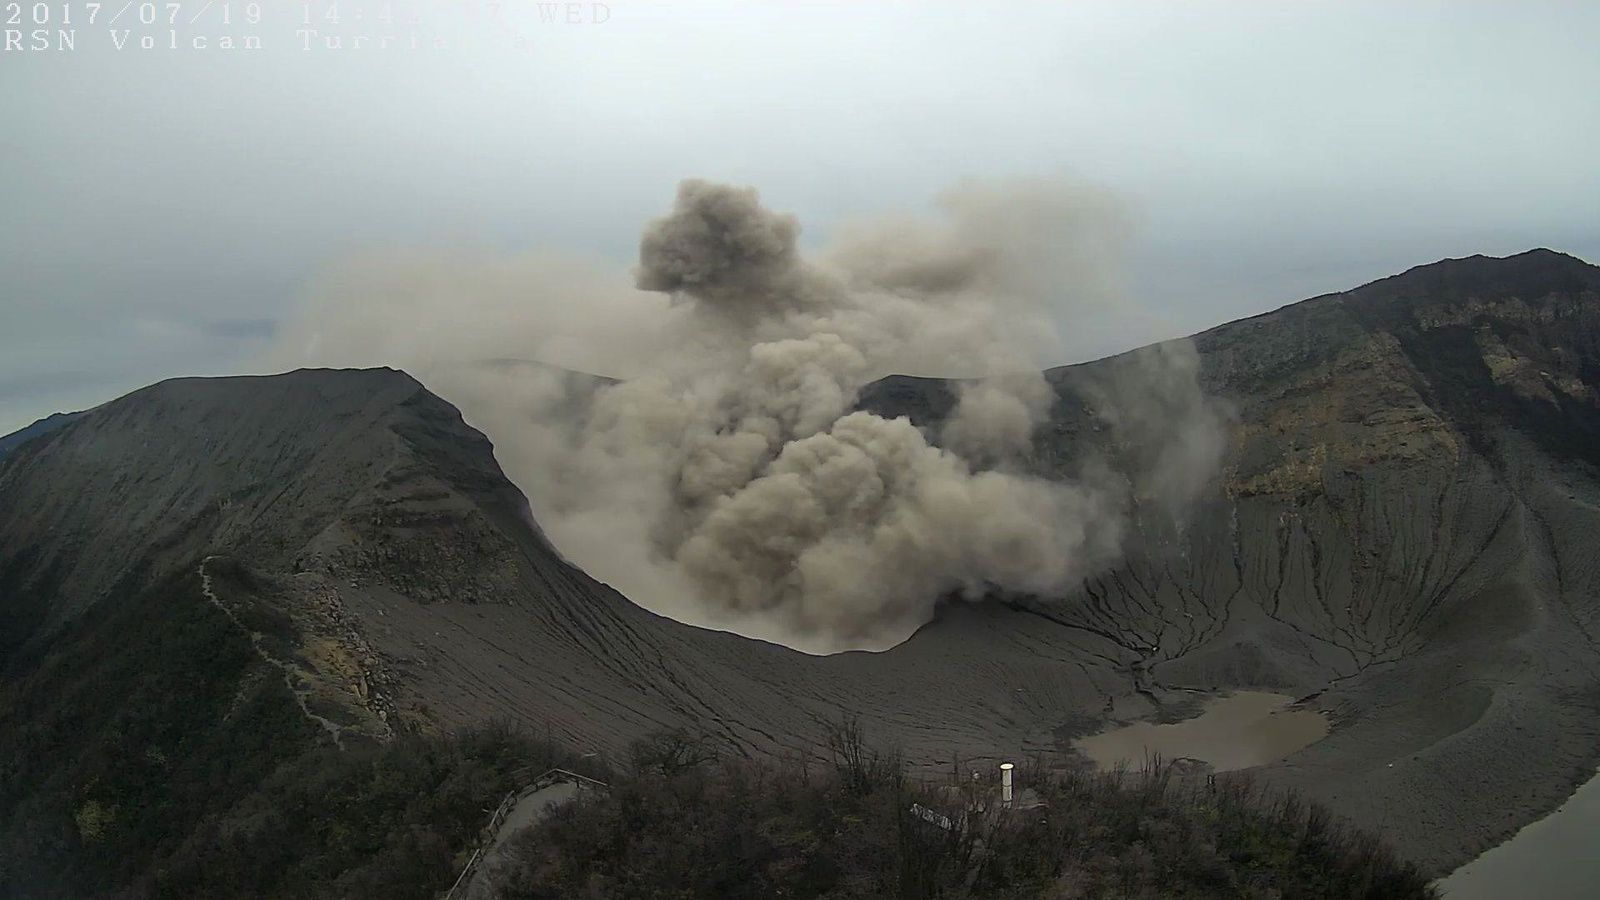 Turrialba - 19.07.2017 - webcam RSN